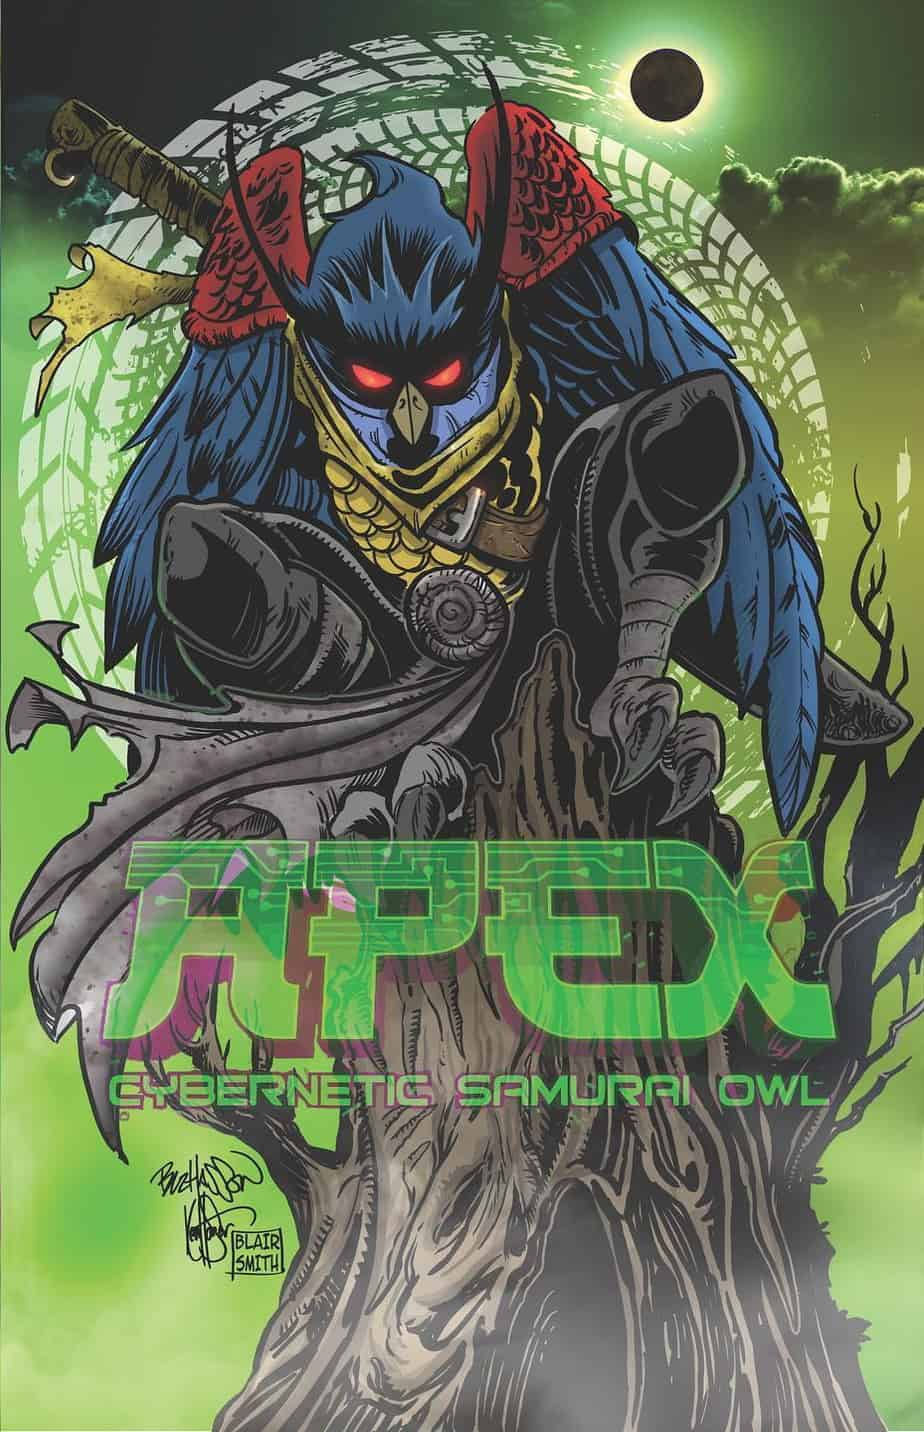 Apex: Cybernetic Samurai Owl #1 - Variant Cover by The Corpse Crew